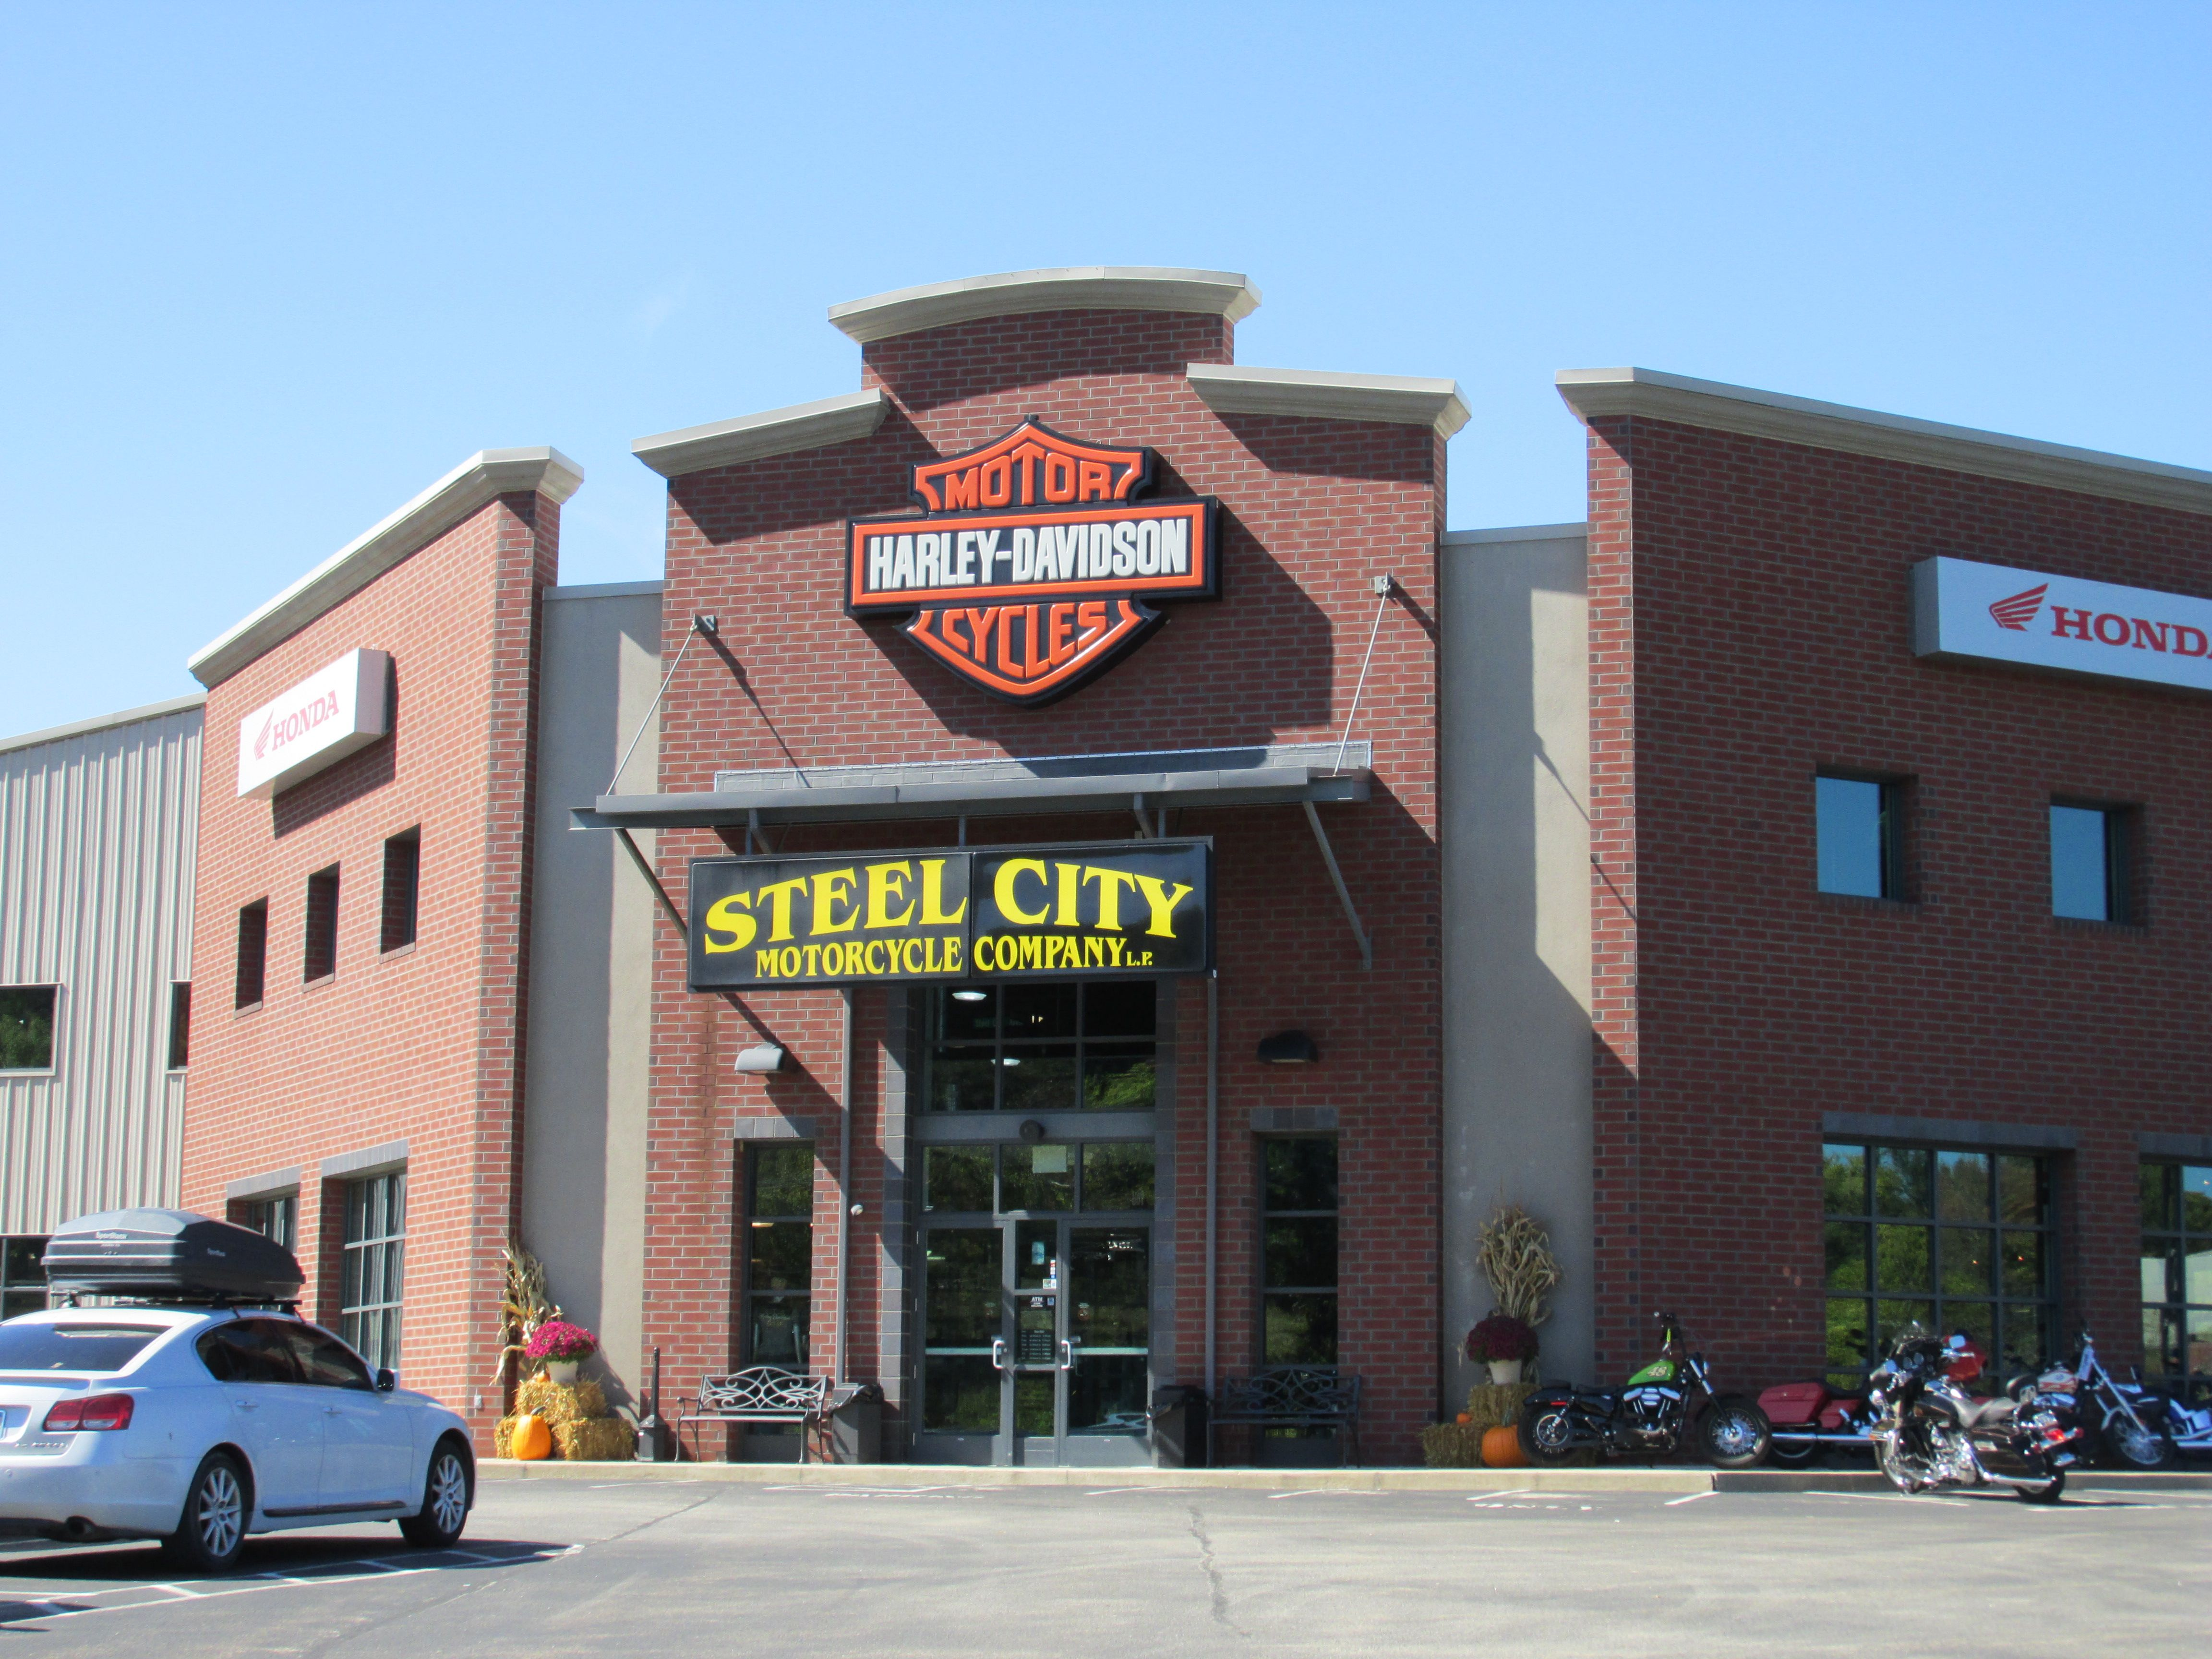 Harley Davidson Usa Steel City With Images Harley Davidson Dealers Harley Davidson Harley